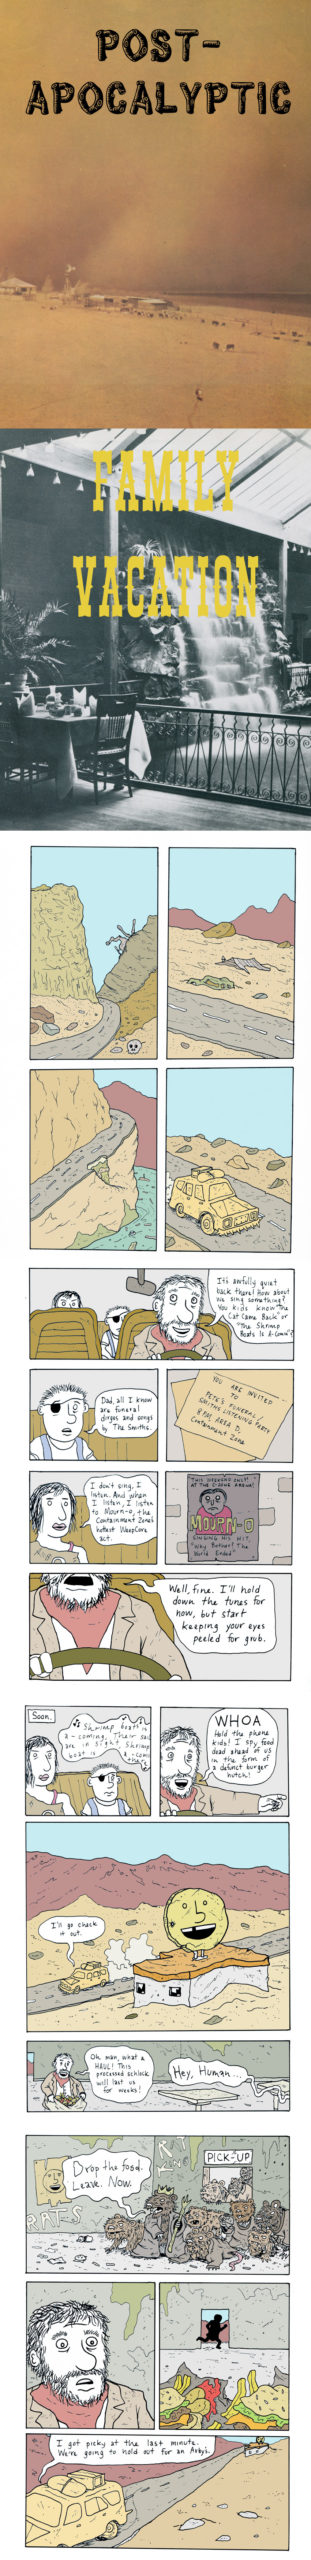 Post-Apocalyptic Family Vacation, 3